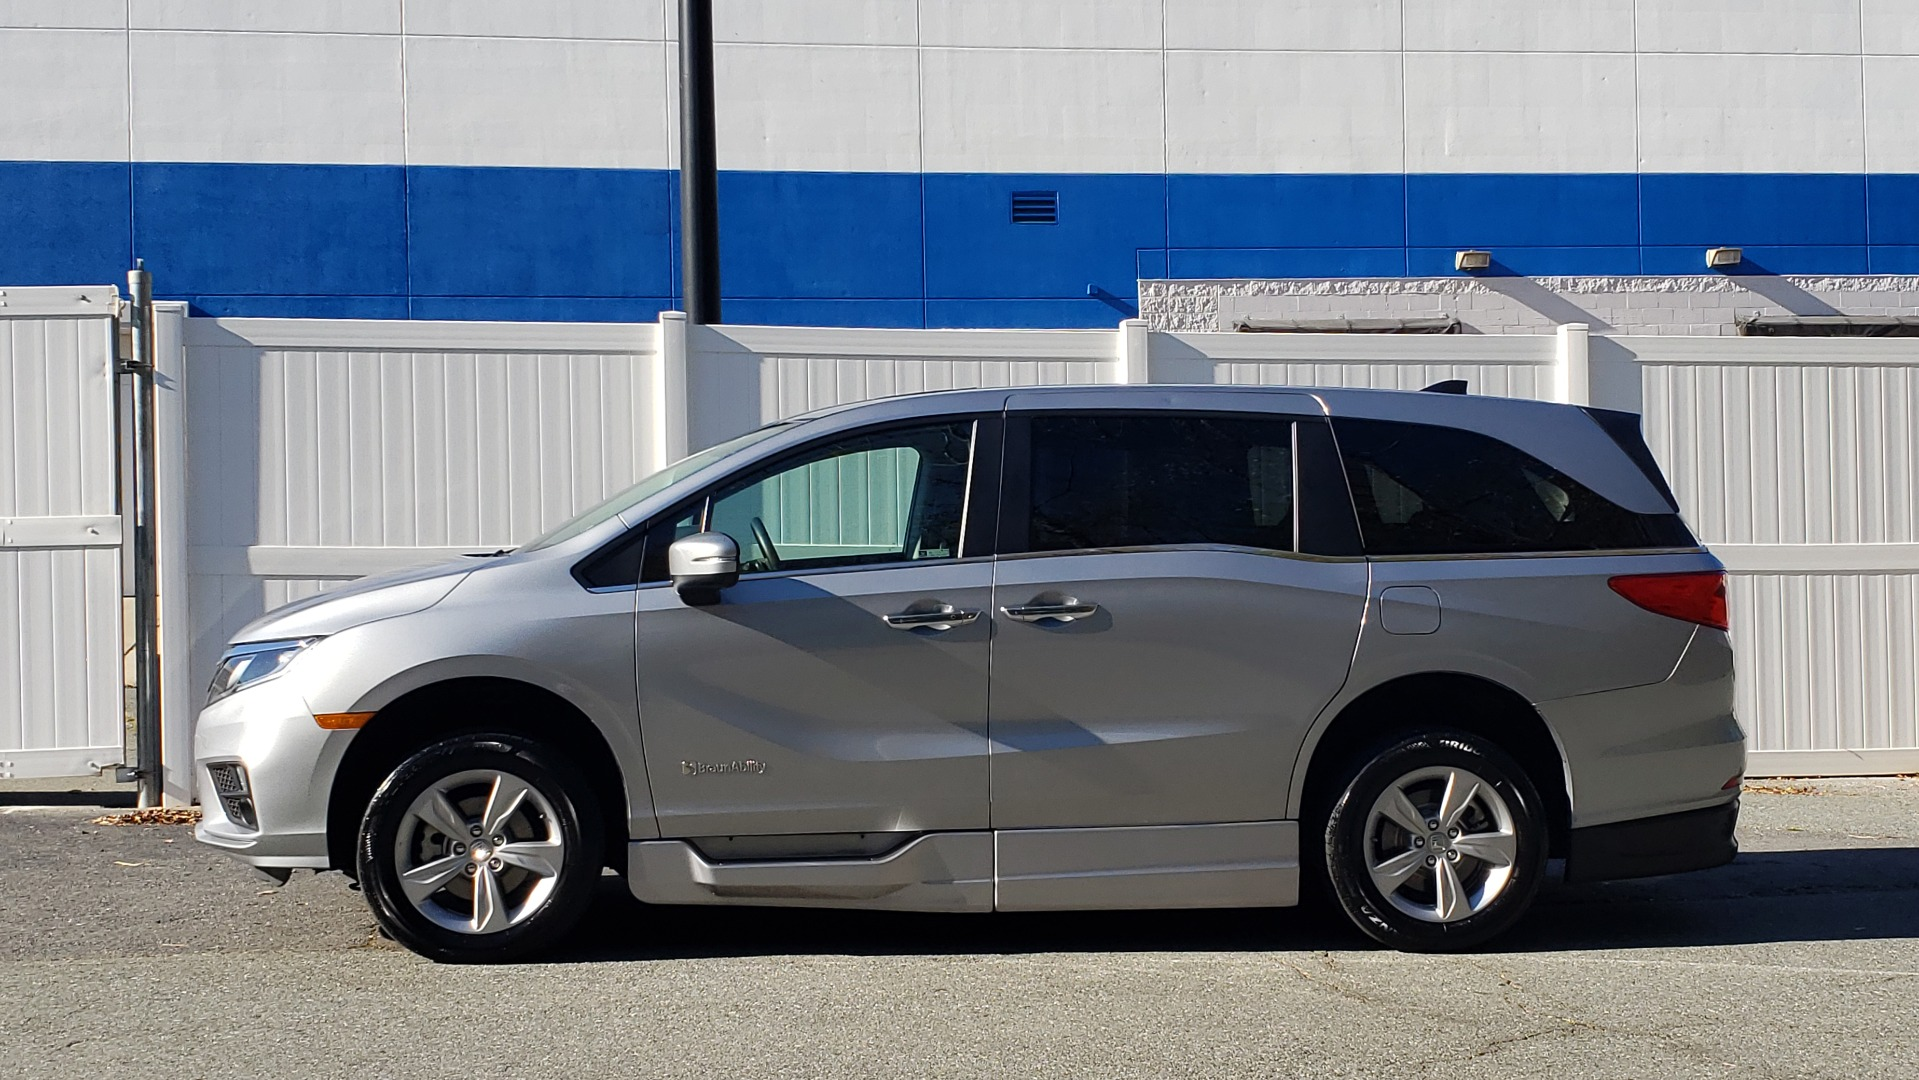 Used 2019 Honda ODYSSEY EX-L BRAUNABILITY / NAV / RES / LKA / BLUE-RAY / SUNROOF / REARVIEW for sale Sold at Formula Imports in Charlotte NC 28227 2